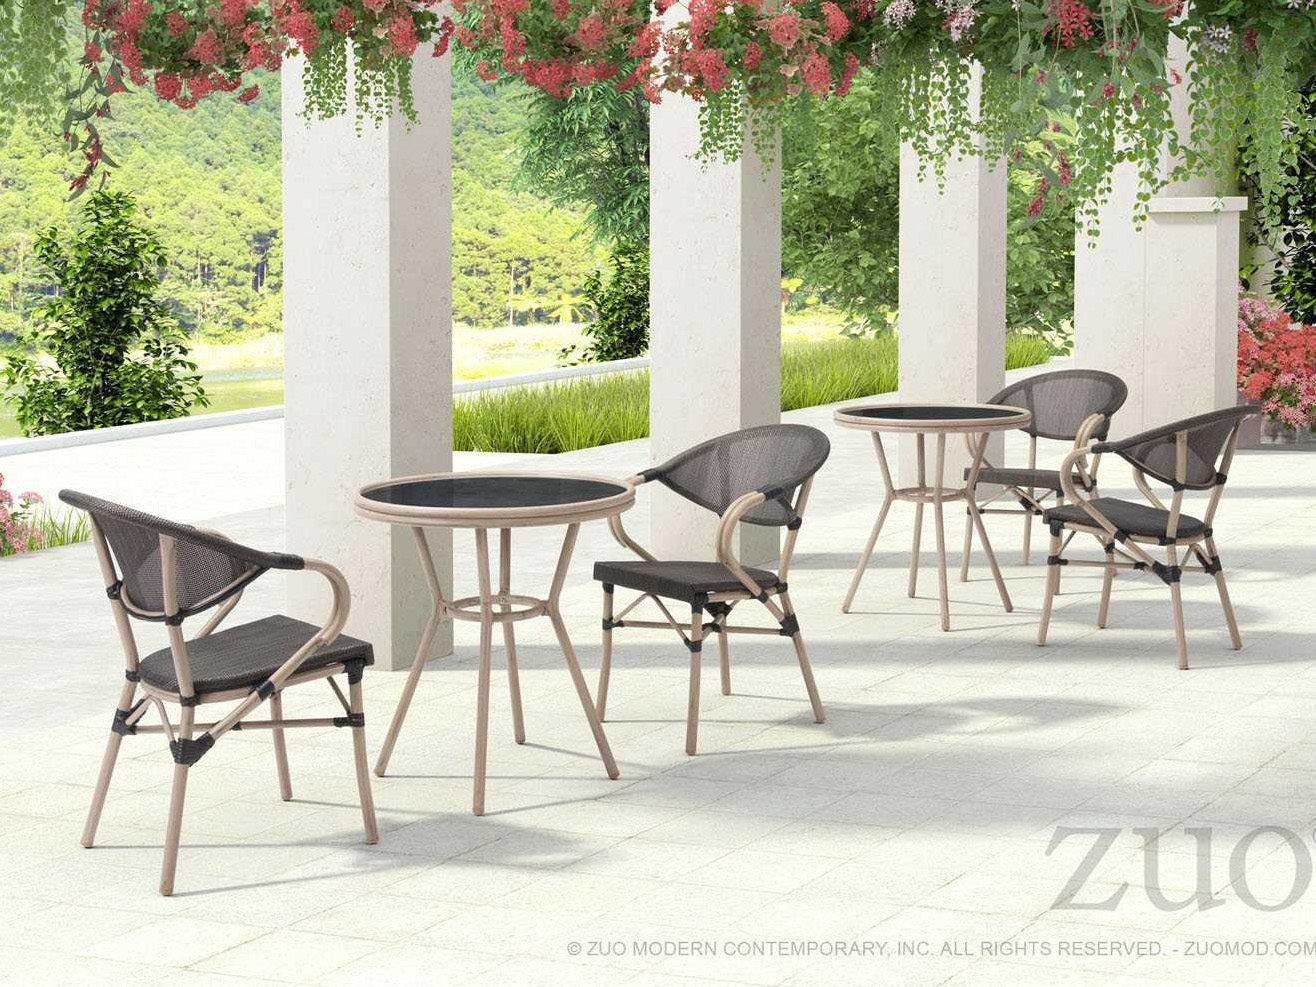 Zuo Outdoor Marseilles Aluminum 2740 Round Glass Top Bistro Table